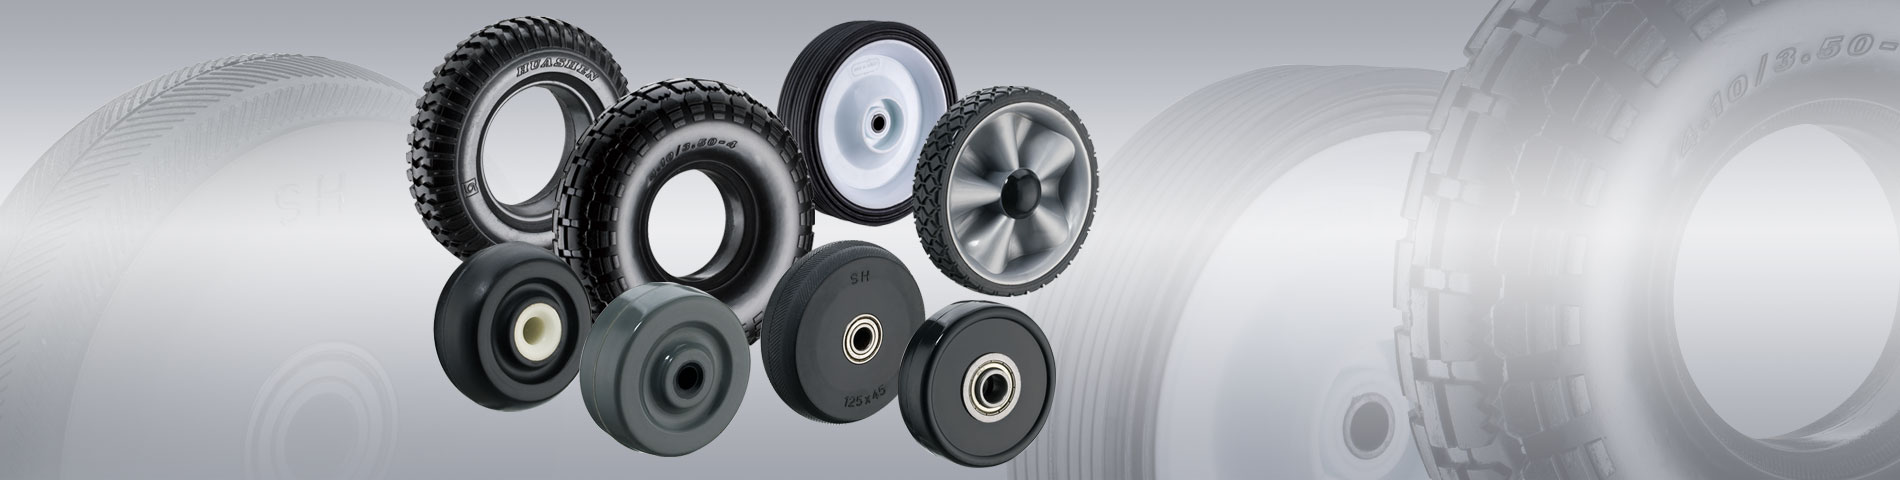 Variety of Rubber Wheels Manufacturing